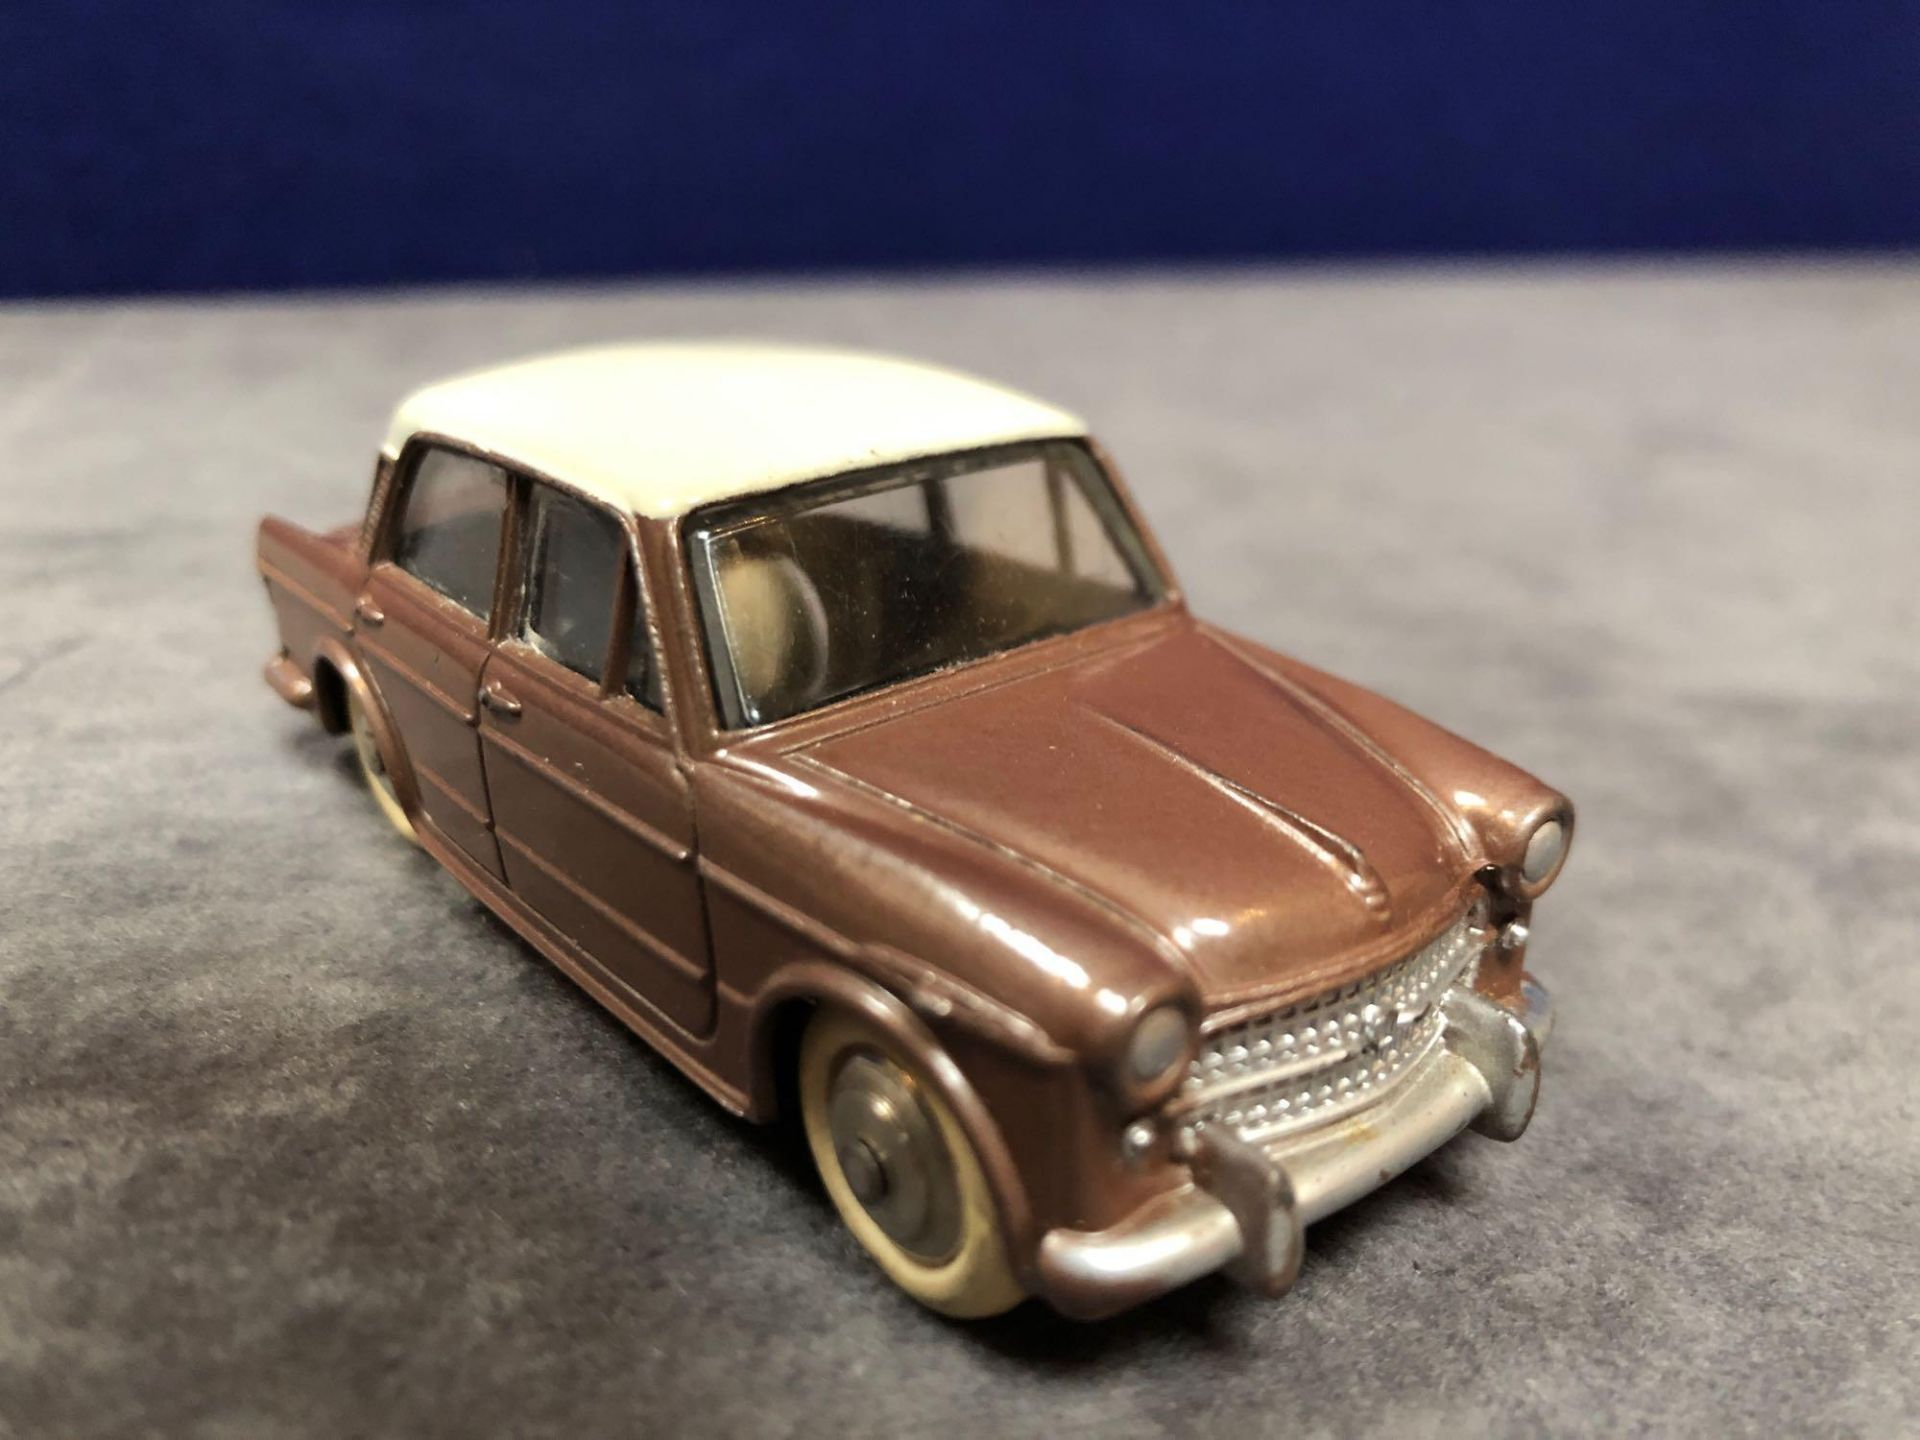 Dinky (France) Diecast #531 Fiat 1200 Grand Vue Brown/Cream - Silver Detailing. In Brown With A - Image 2 of 3